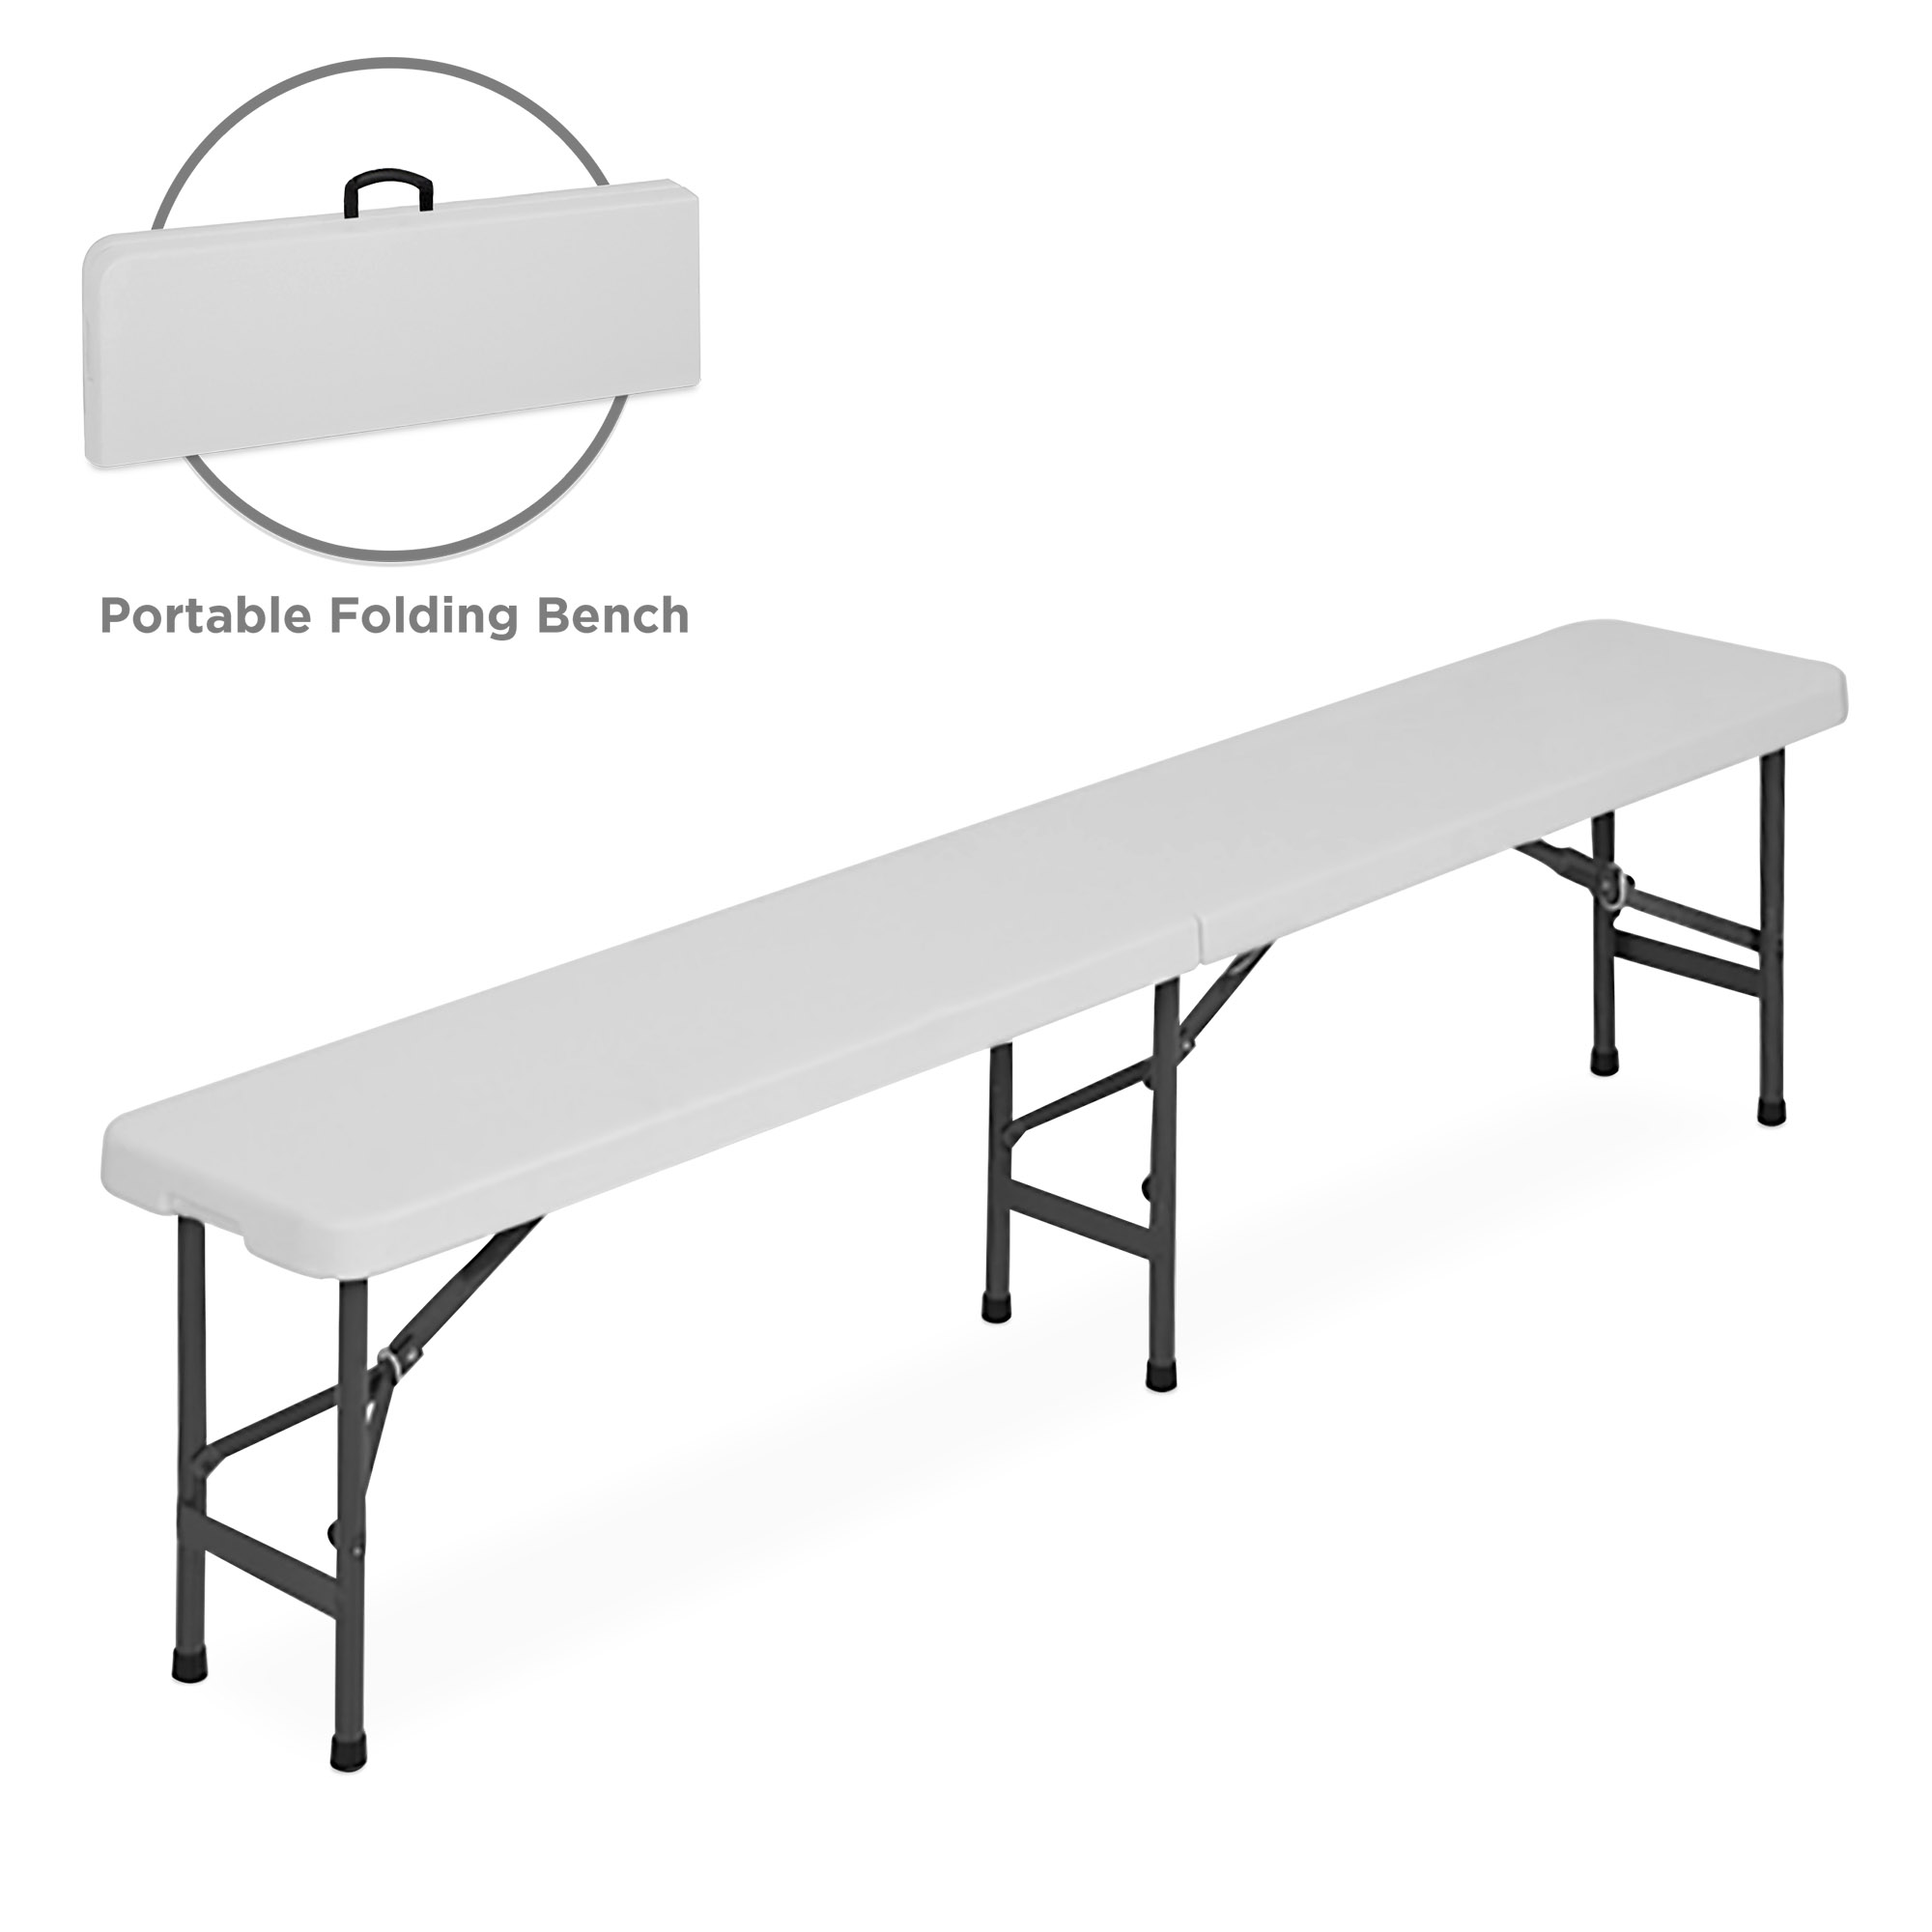 Best Choice Products 6ft Portable Plastic Bench Seat For Indoor, Outdoor,  Picnic, Dining, Camping W/ Handle, Lock, Non Slip Rubber Feet, Steel Legs